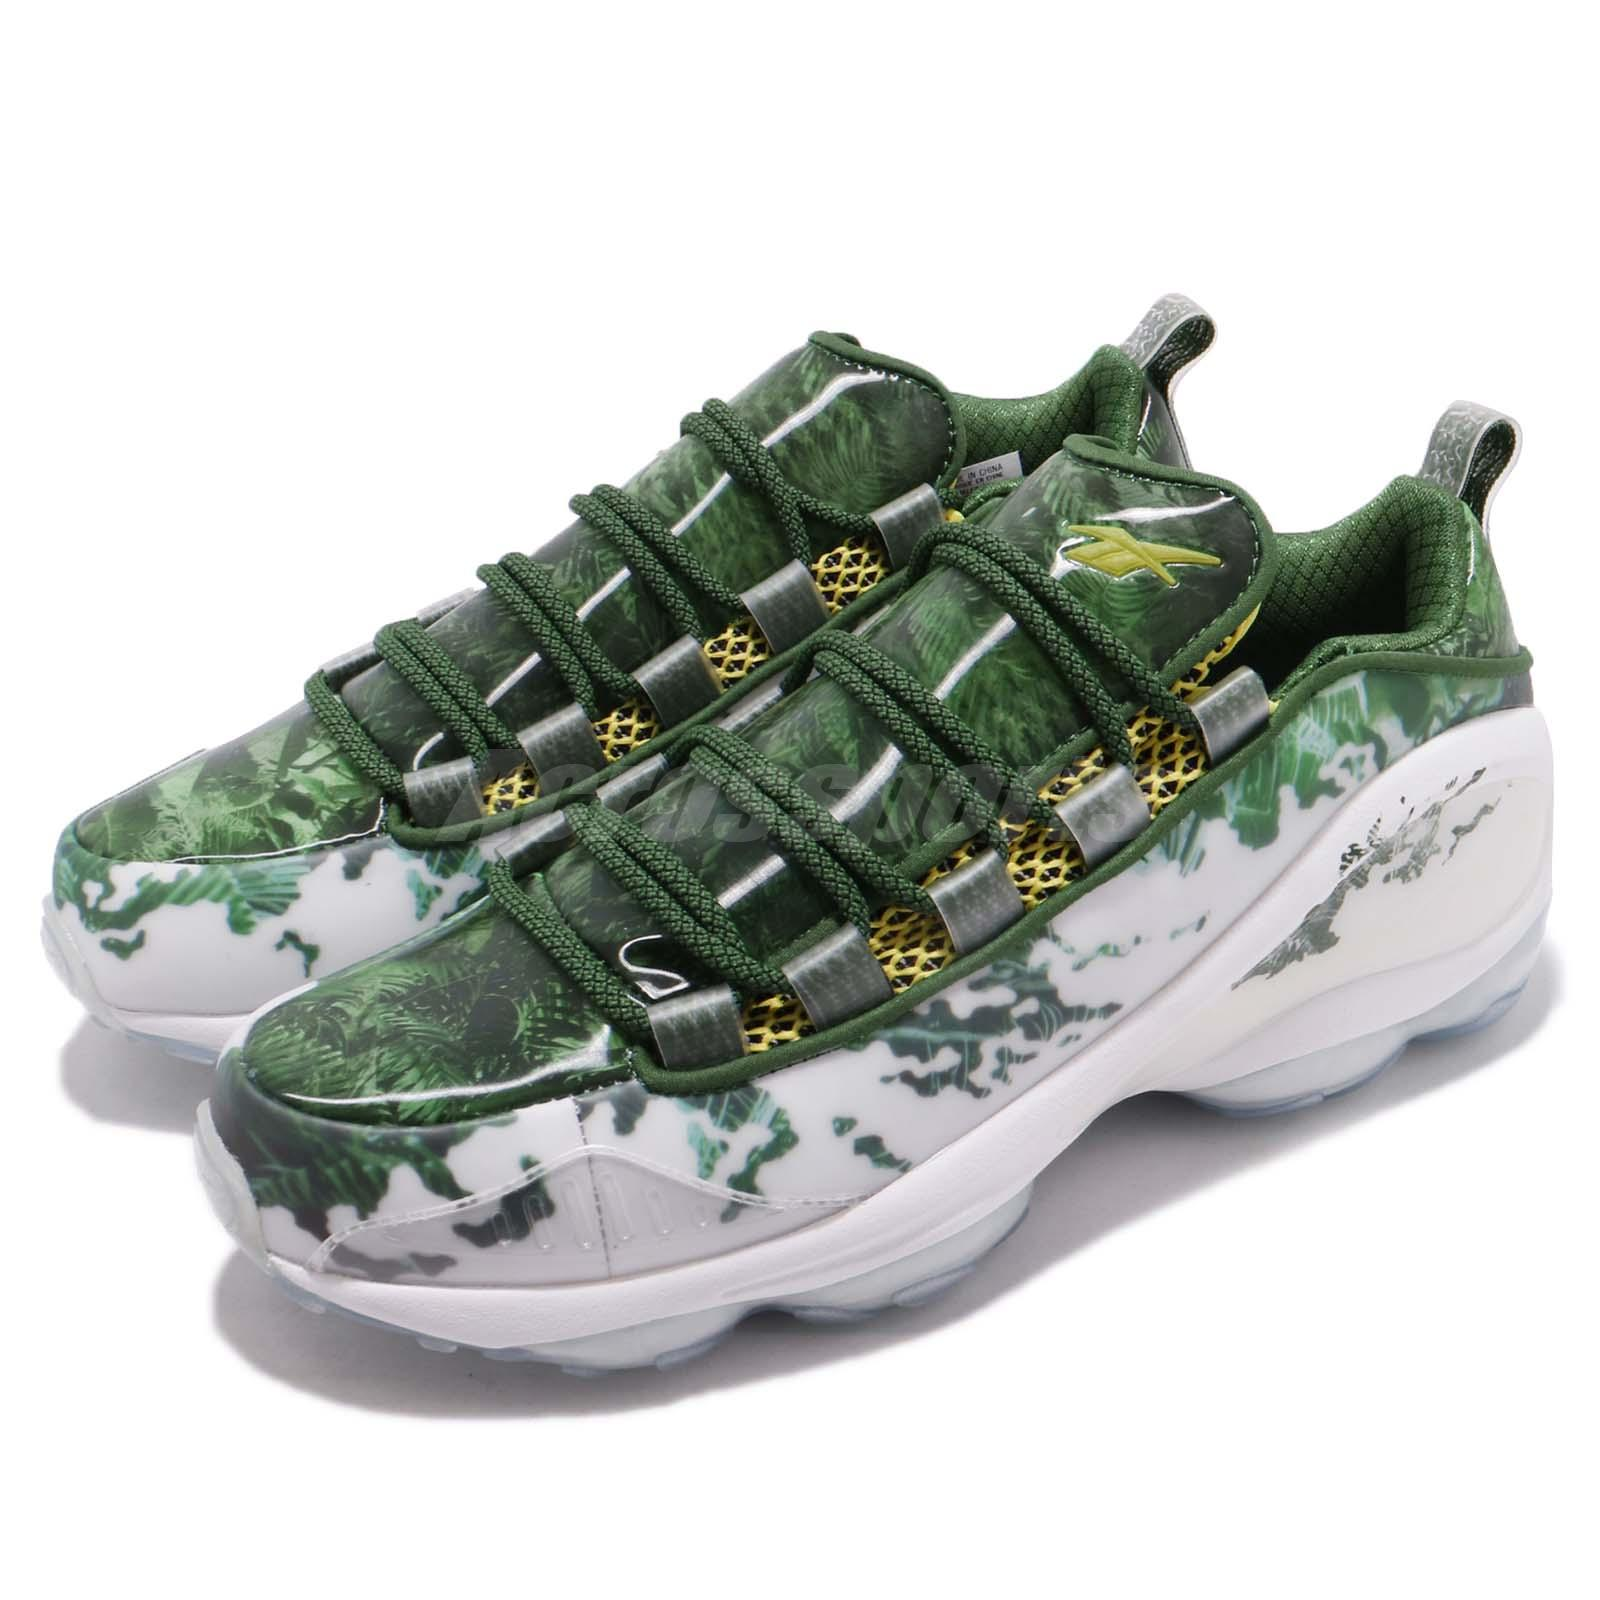 Details about Reebok DMX Run 10 MU 20th Century Fox The Predator Scout  Green Men Shoes CN7155 501f5816e